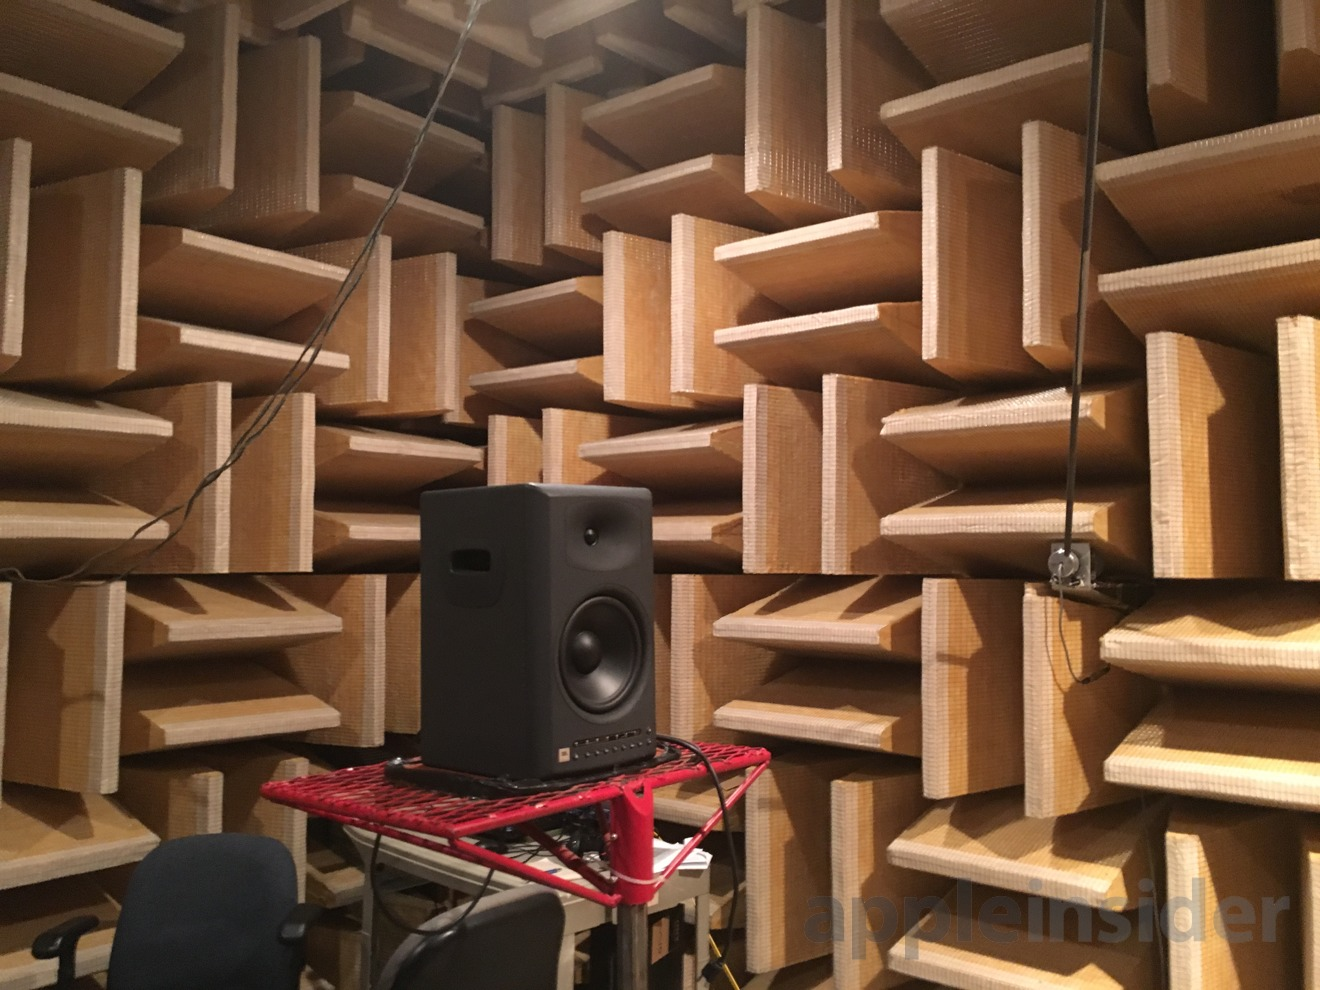 Consumer Reports' anechoic chamber